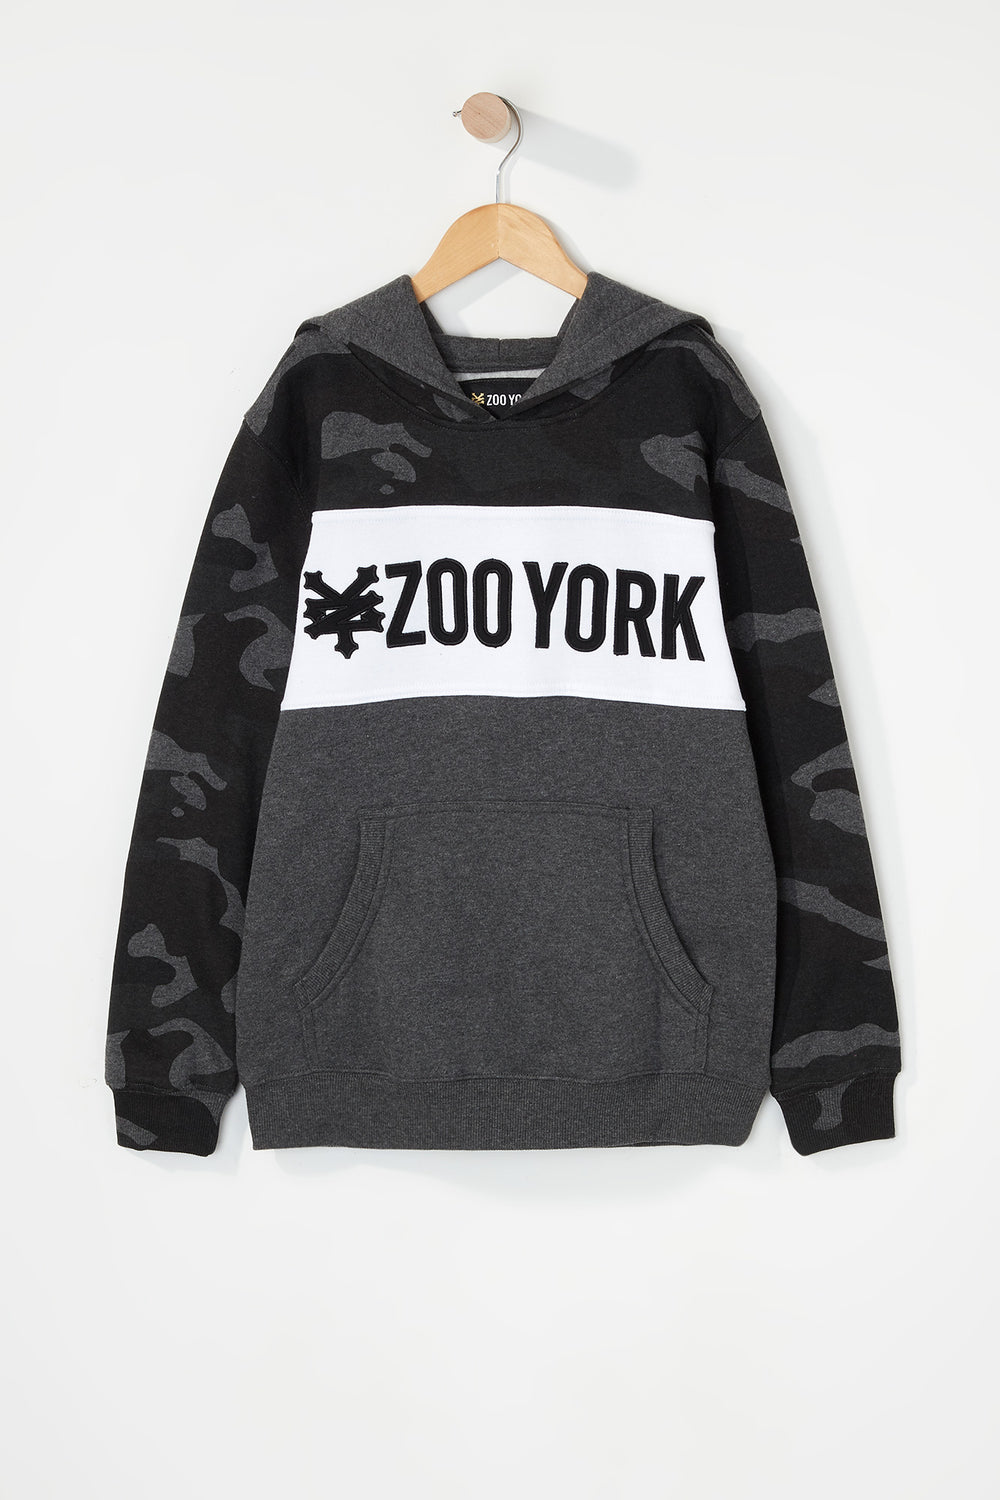 Zoo York Boys Camo Colour Block Hoodie Black with White